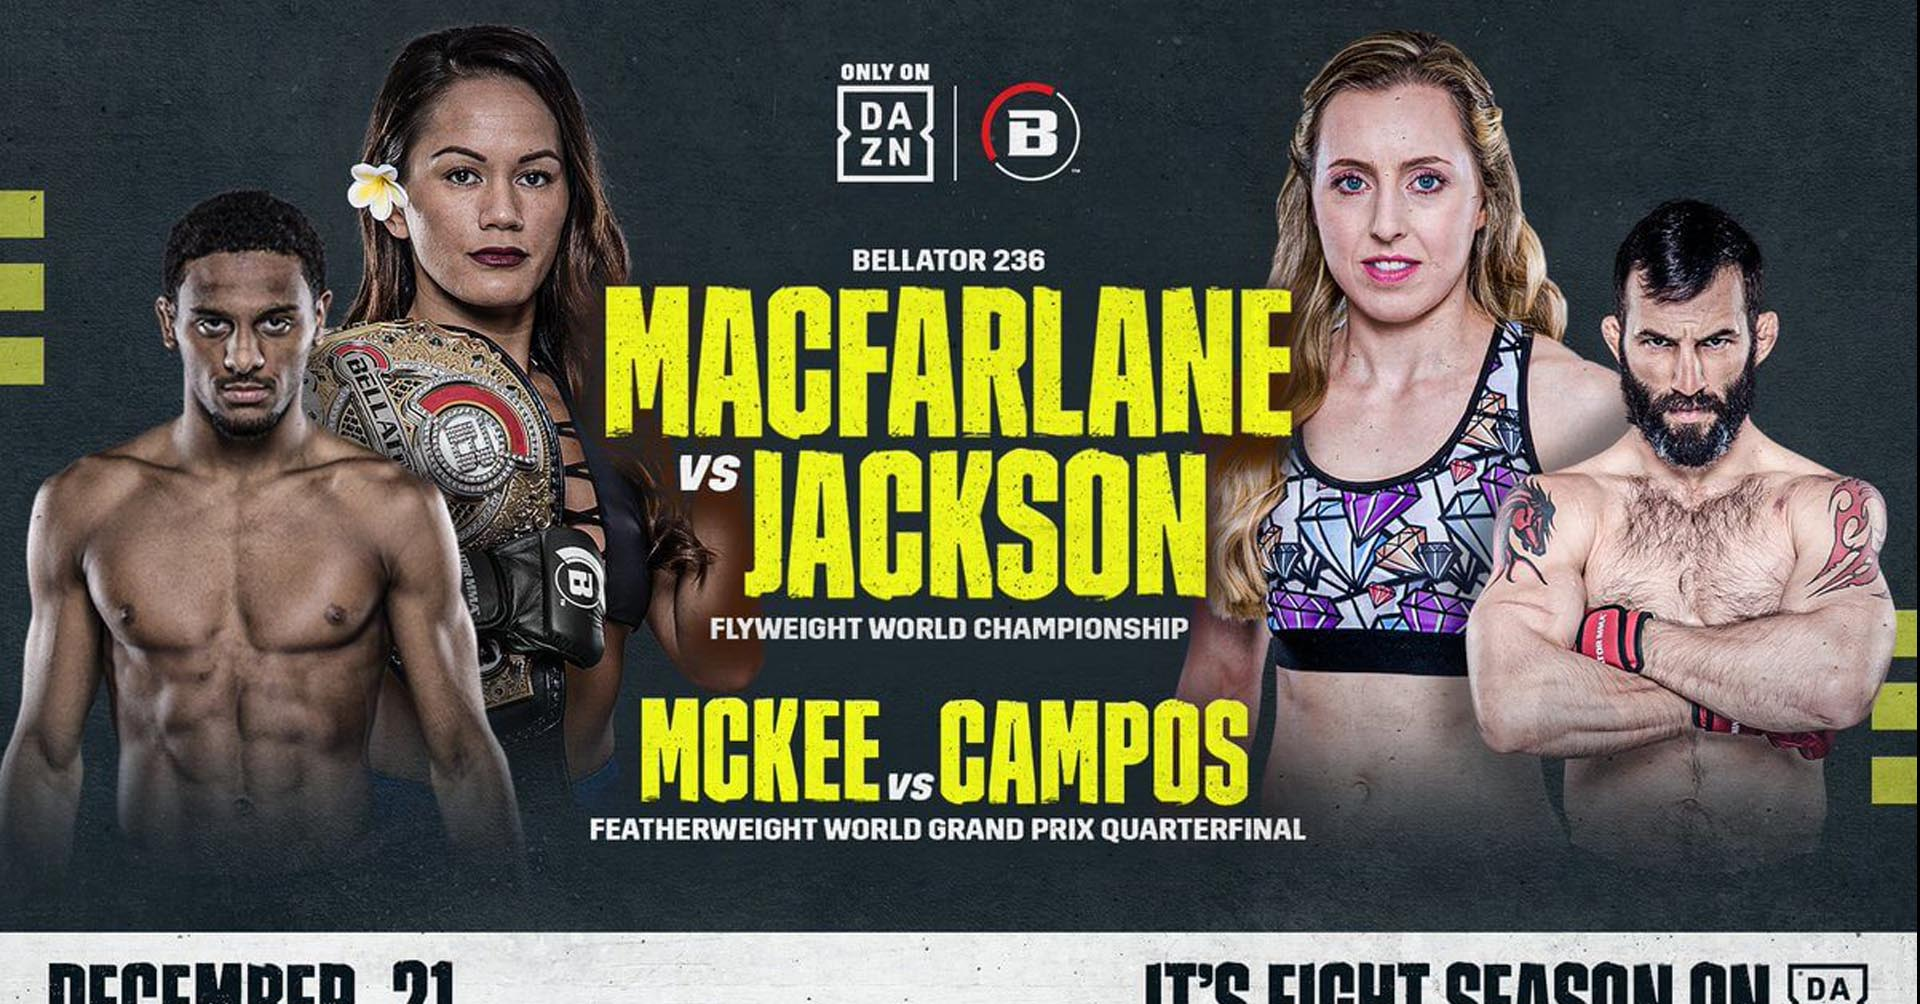 Bellator 236 MacFarlane vs Jackson - La Fight Card Completa